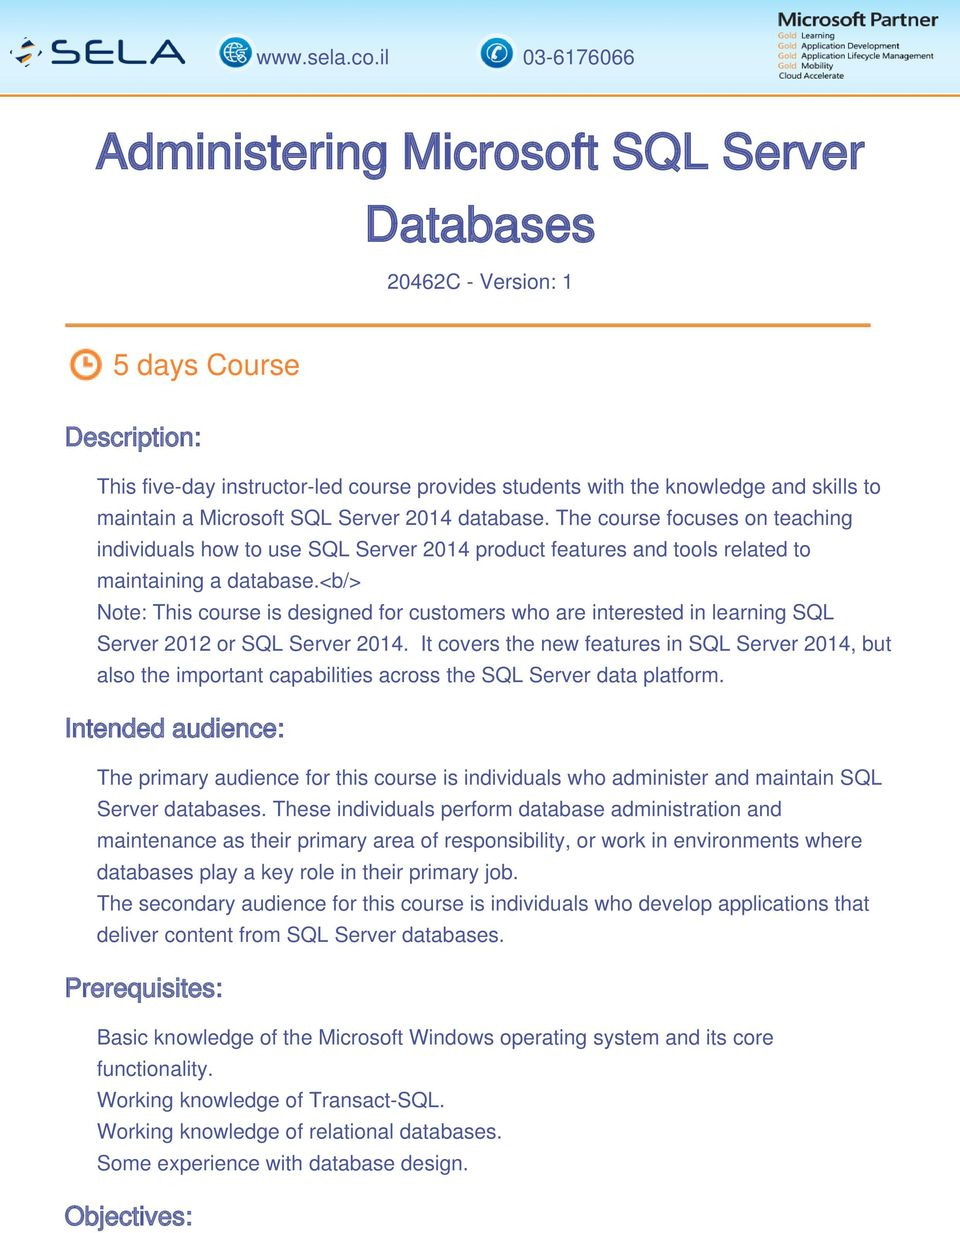 <b/> Note: This course is designed for customers who are interested in learning SQL Server 2012 or SQL Server 2014.